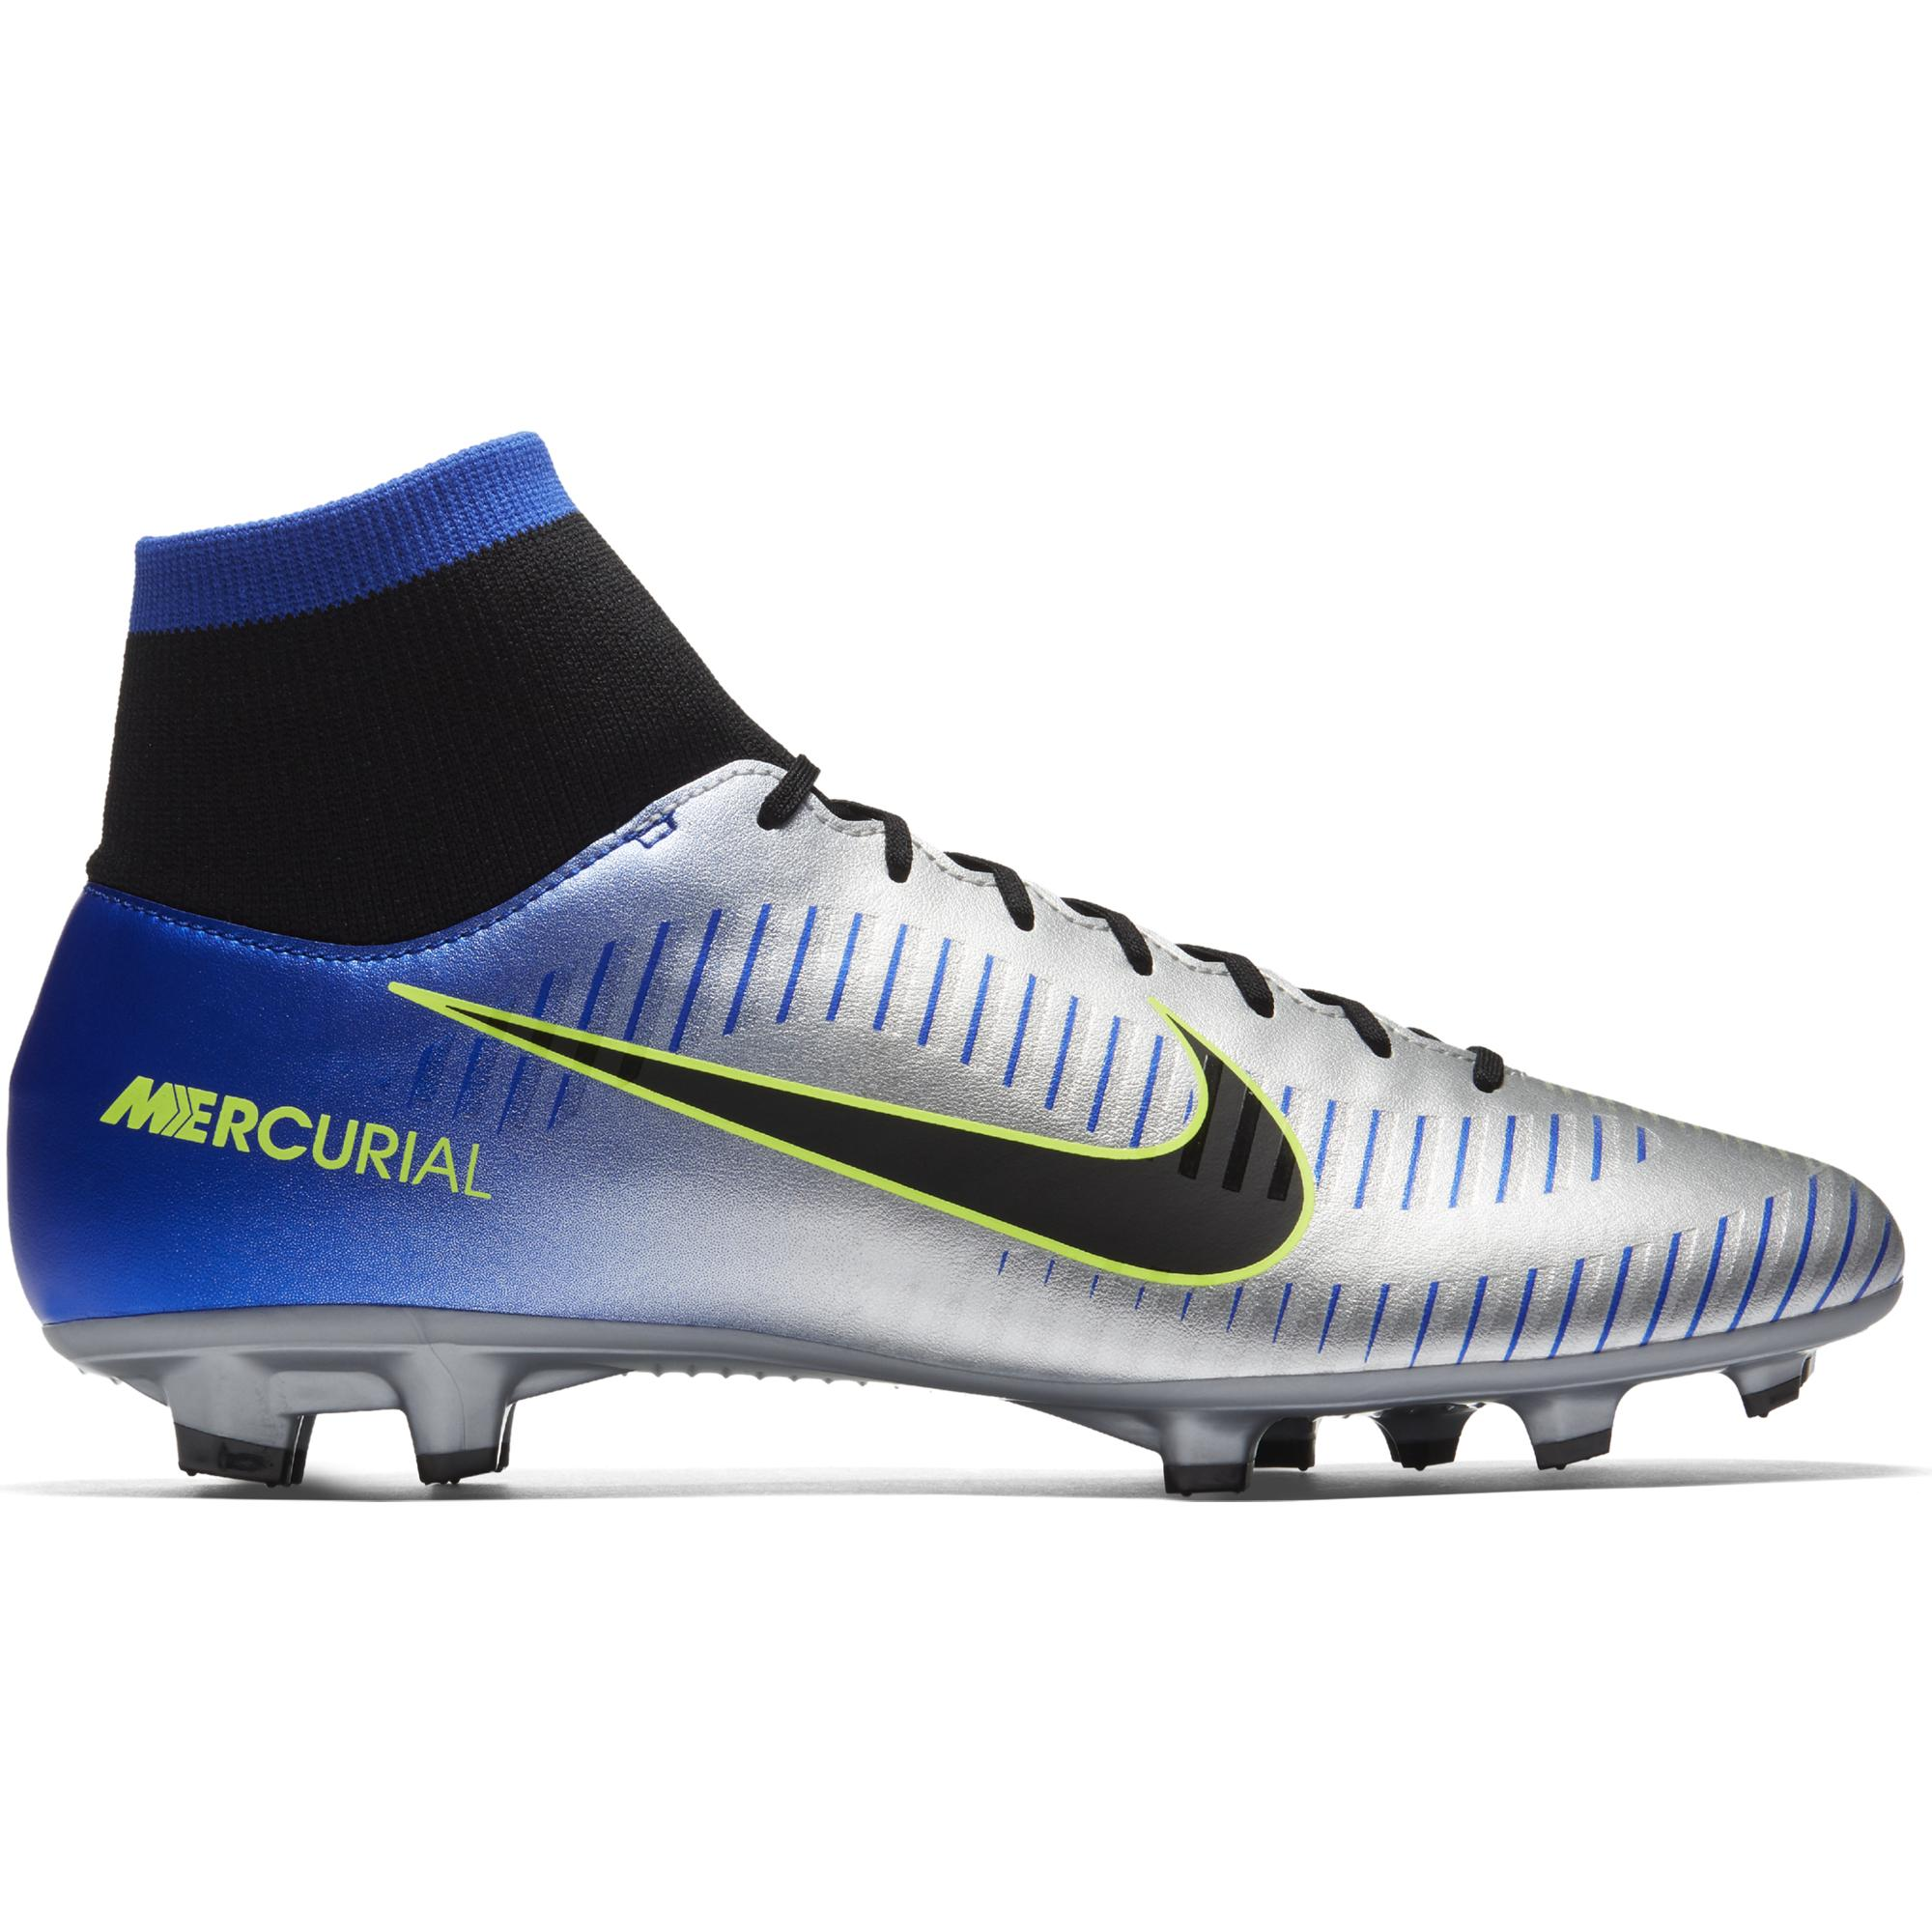 sports shoes 525de f7d5c Nike Chaussures De Football Mercurial Victory Vi Df Njr Fg Neymar Jr